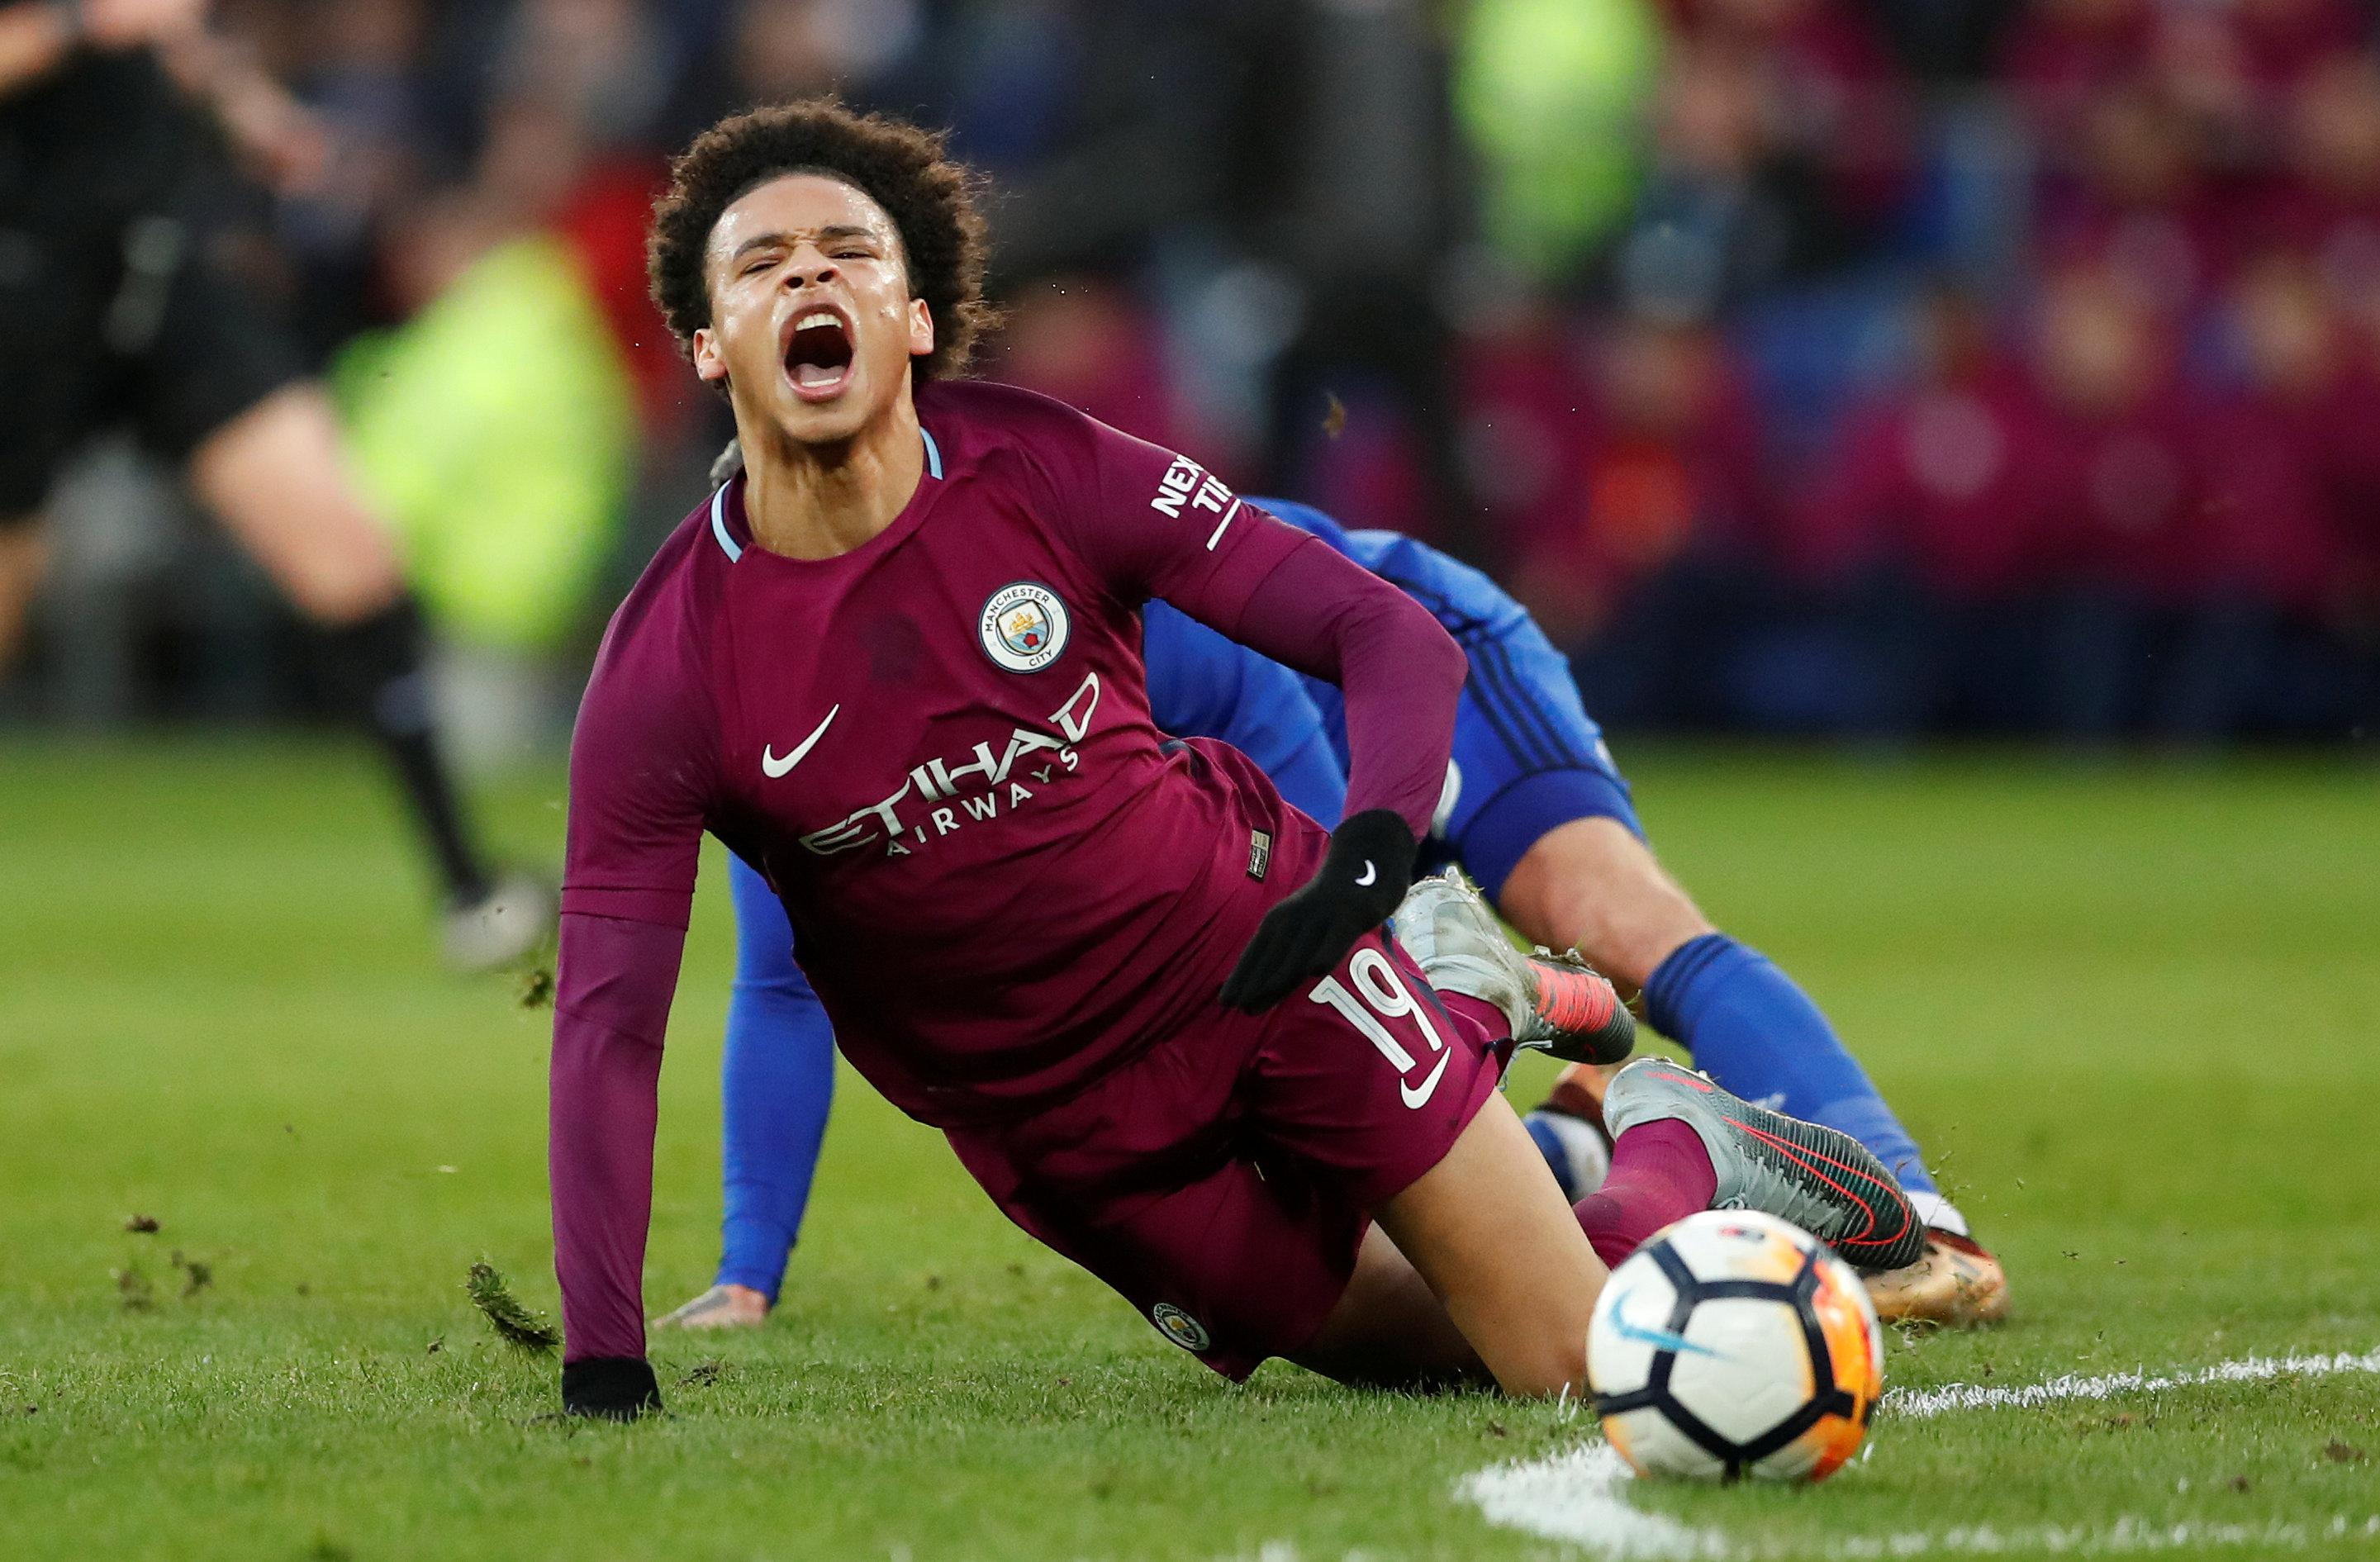 Sane suffered ankle ligament damage